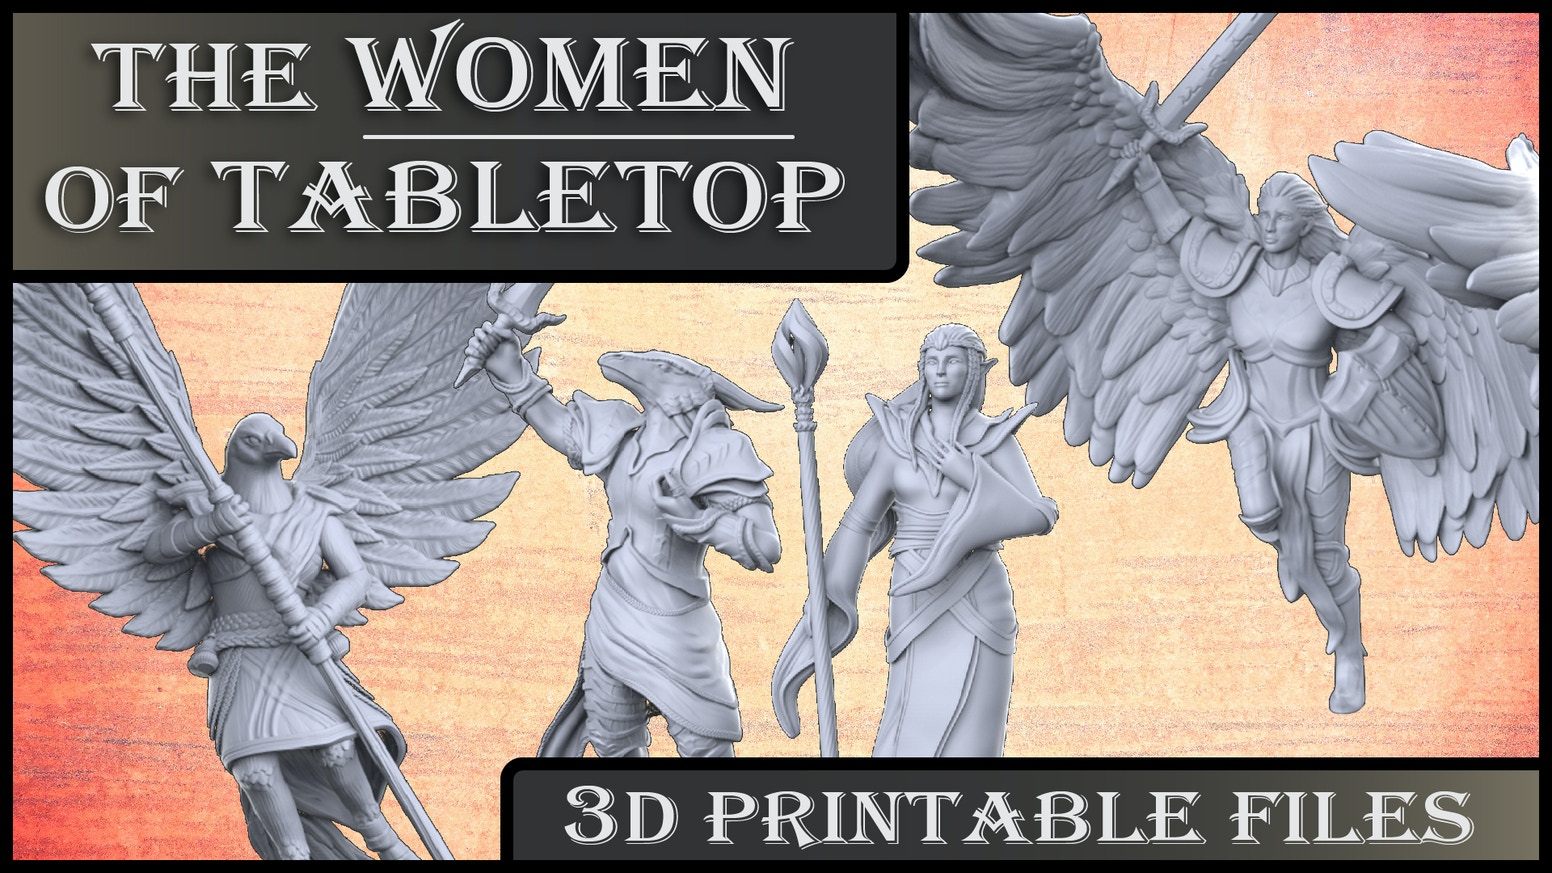 beautiful and strong women 3D printable files for the tabletop community